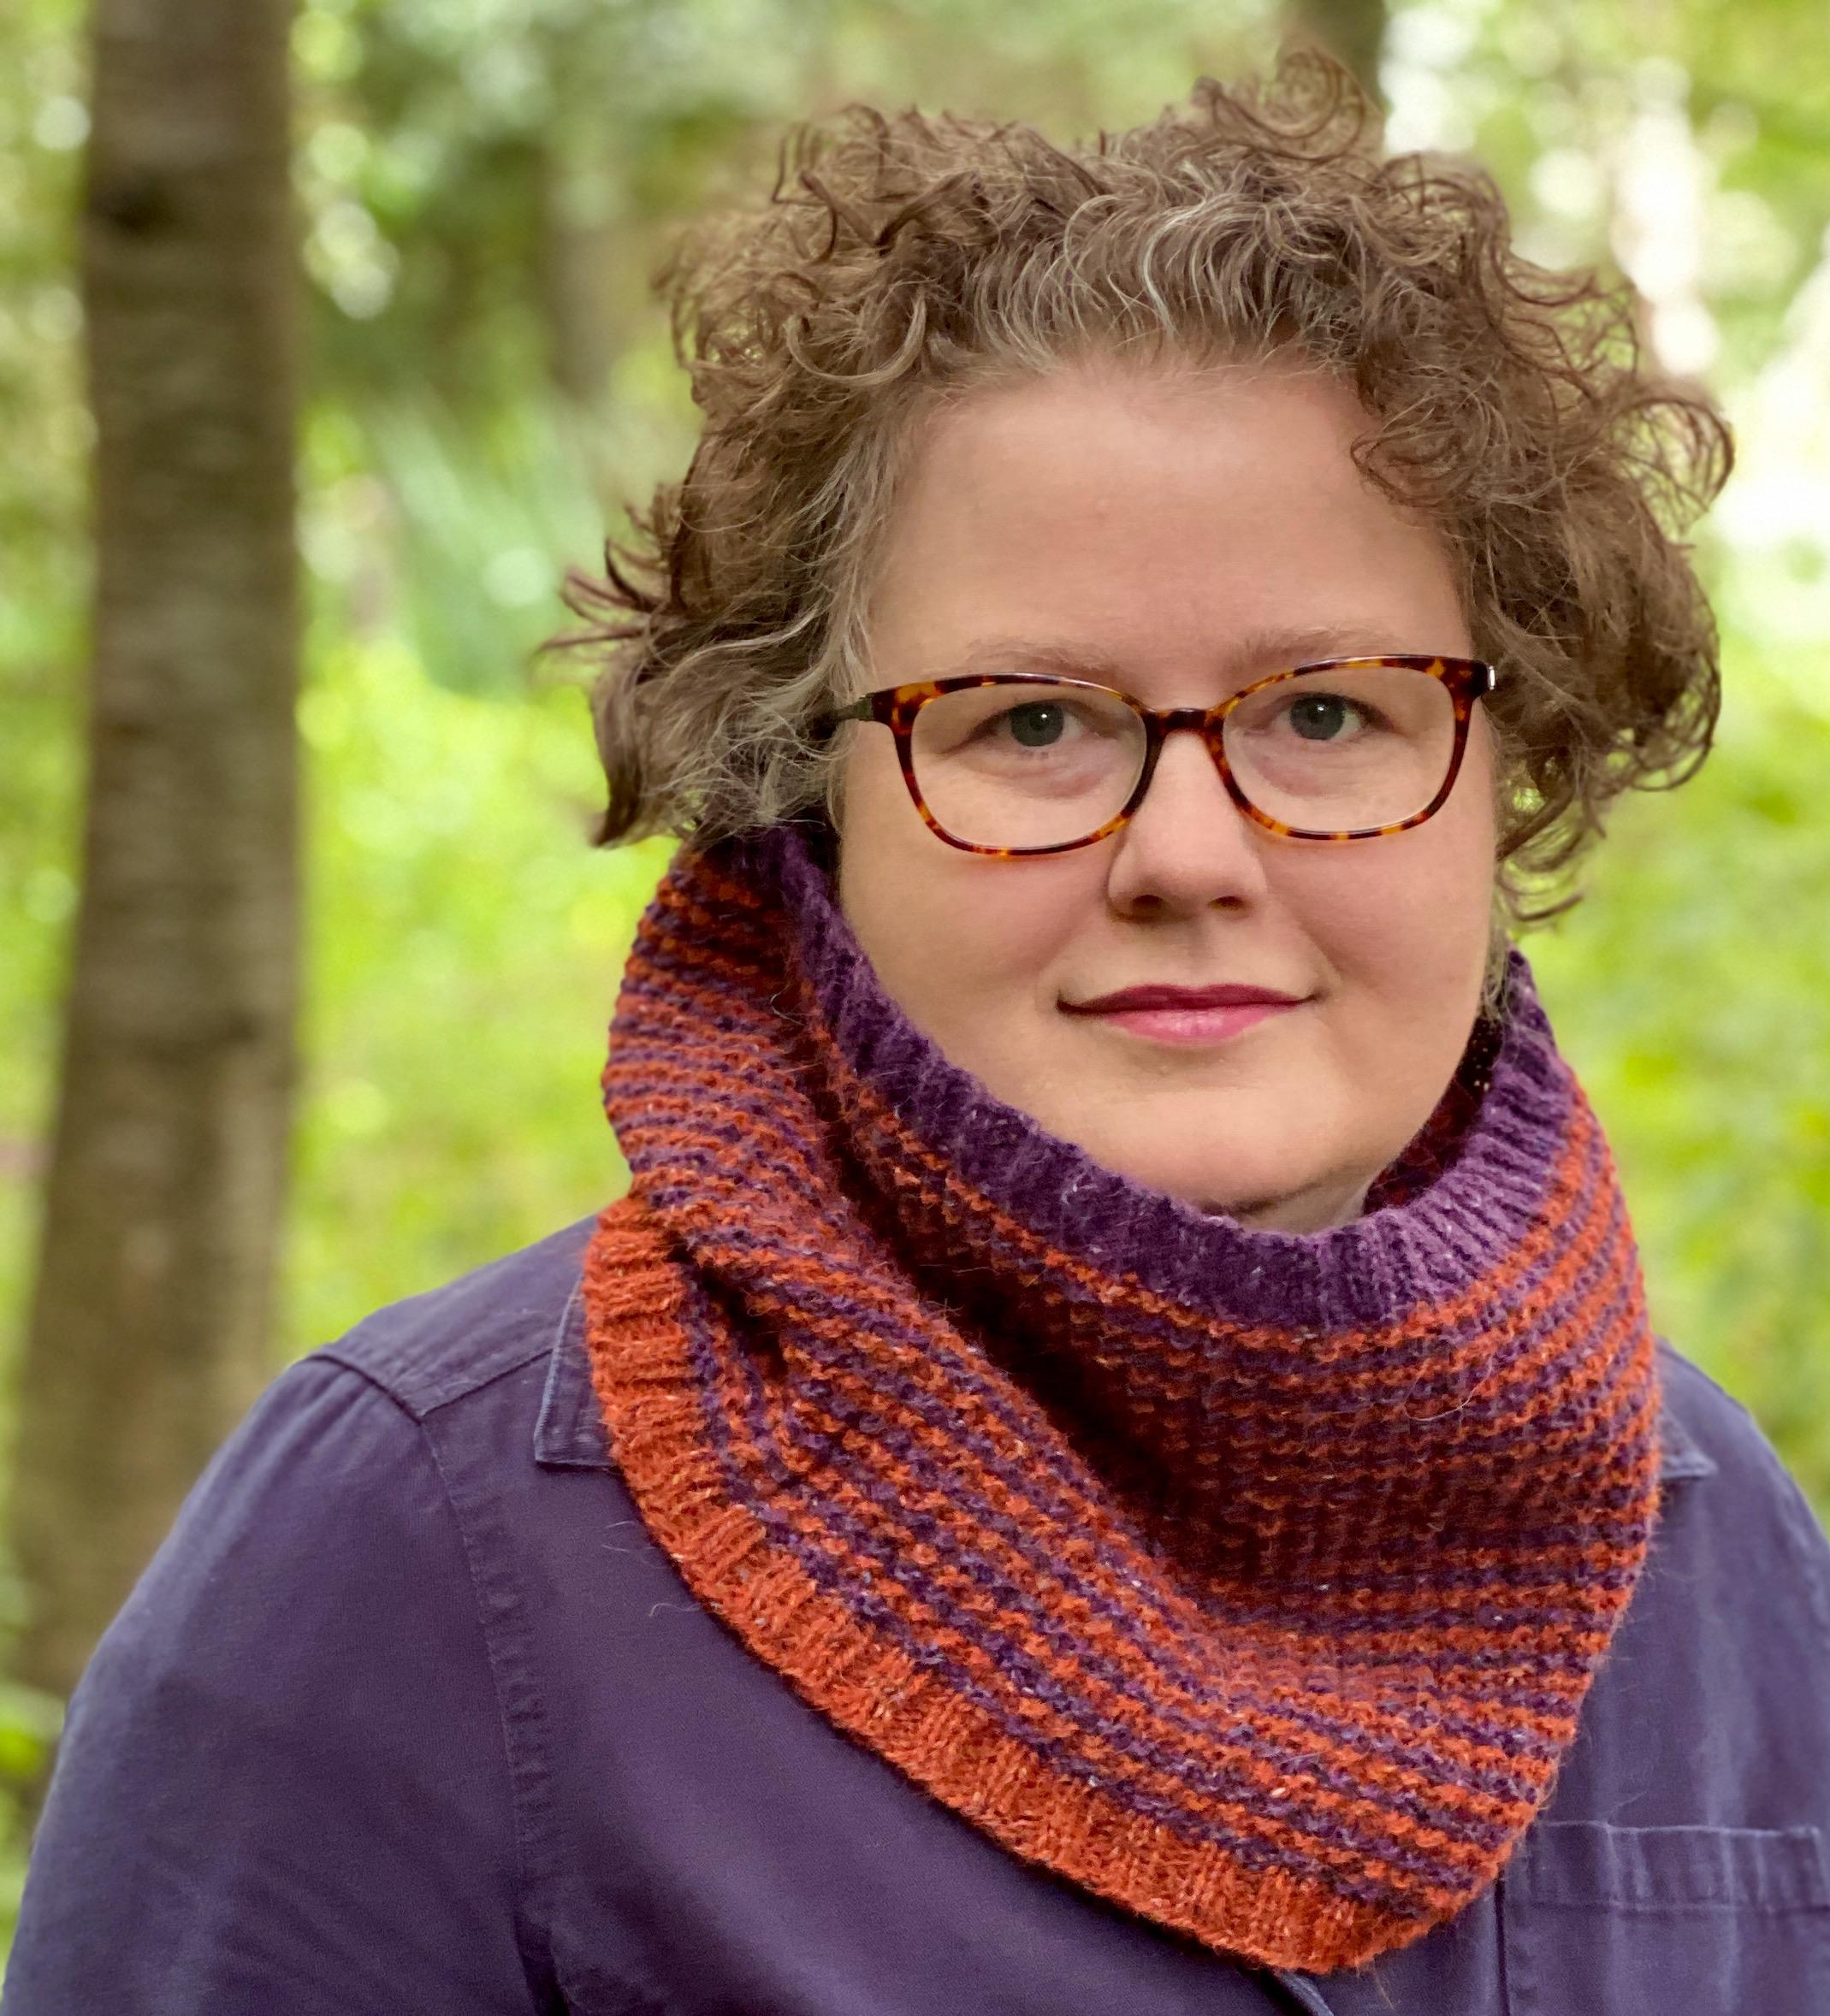 Hannah wearing a hand knitted Trudy cowl, striped in purple and orange